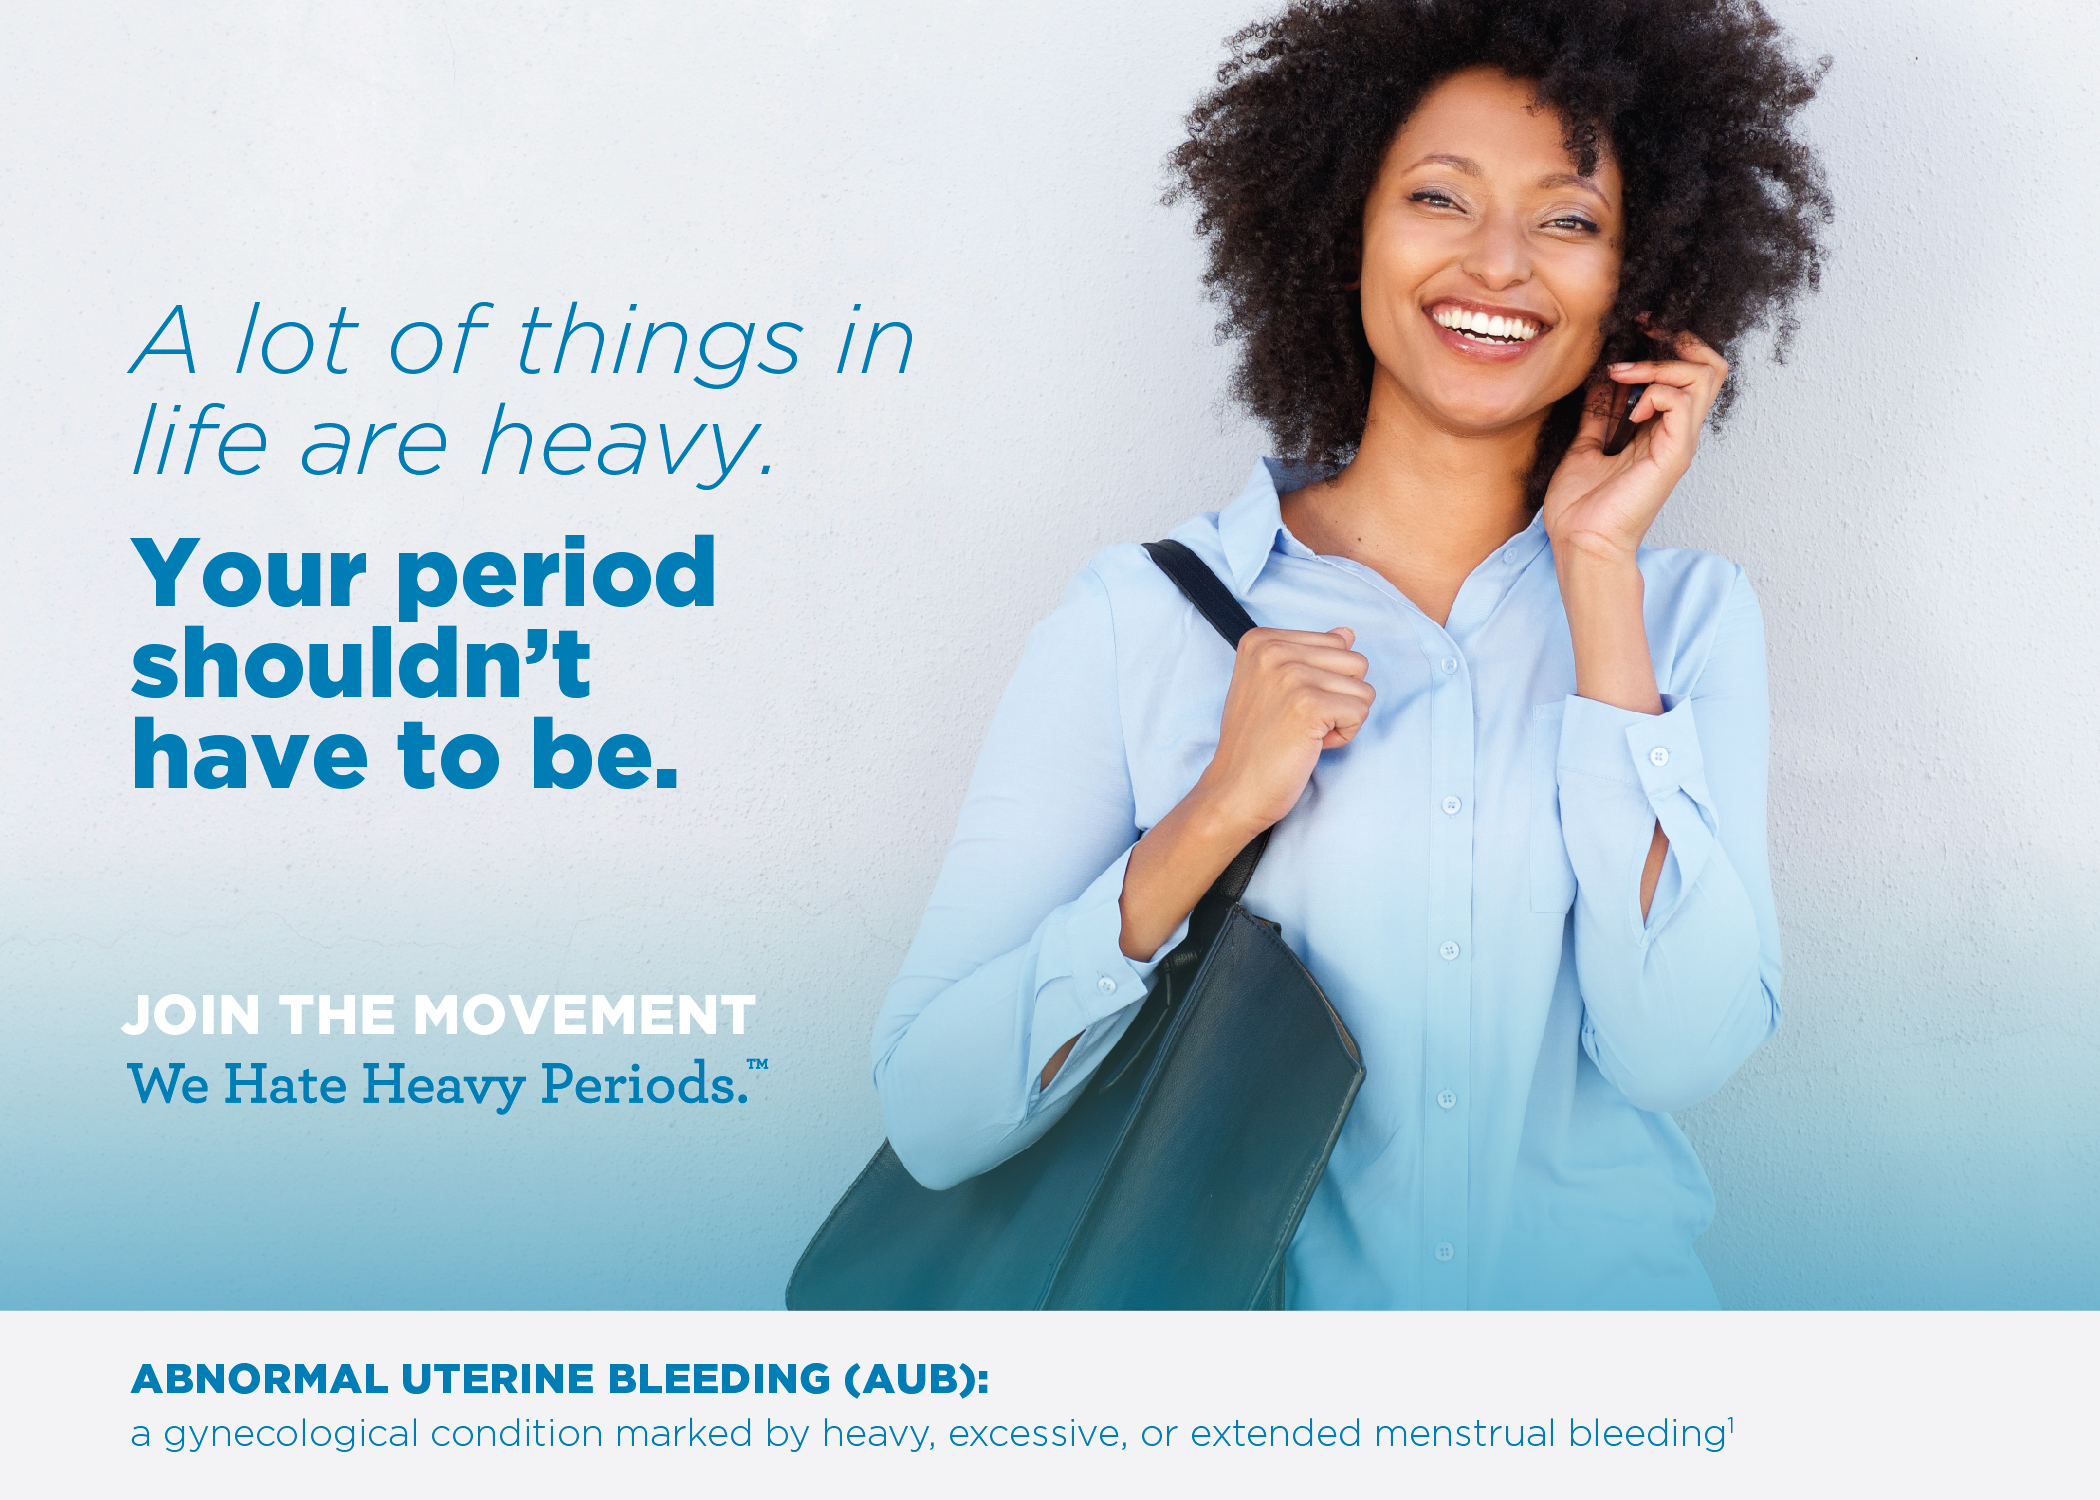 We Hate Heavy Periods BlogHer AUB Infographic